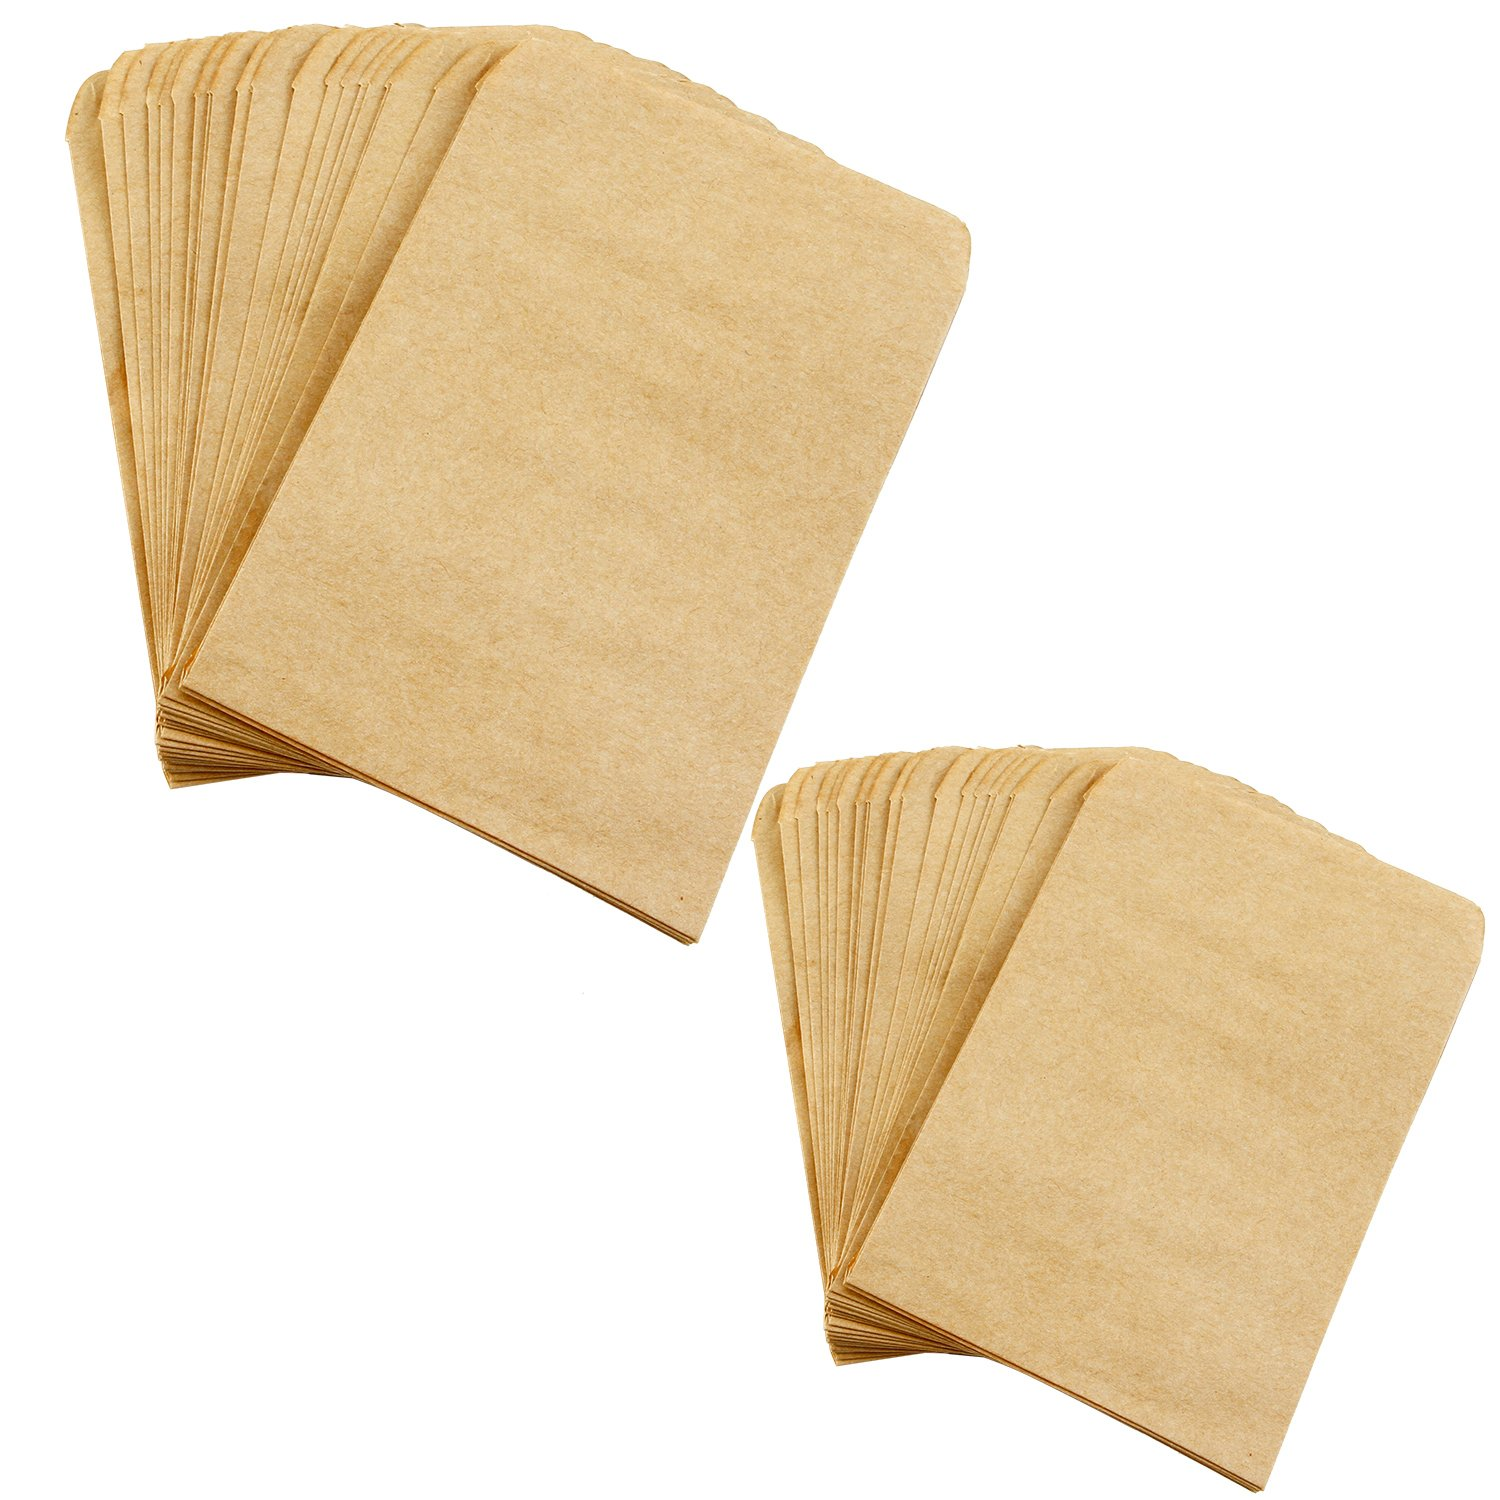 Aneco 200 Pieces Seed Envelopes Kraft Seed Paper Bags Mini Coin Packets Envelopes for Home and Garden Use, 2 Size